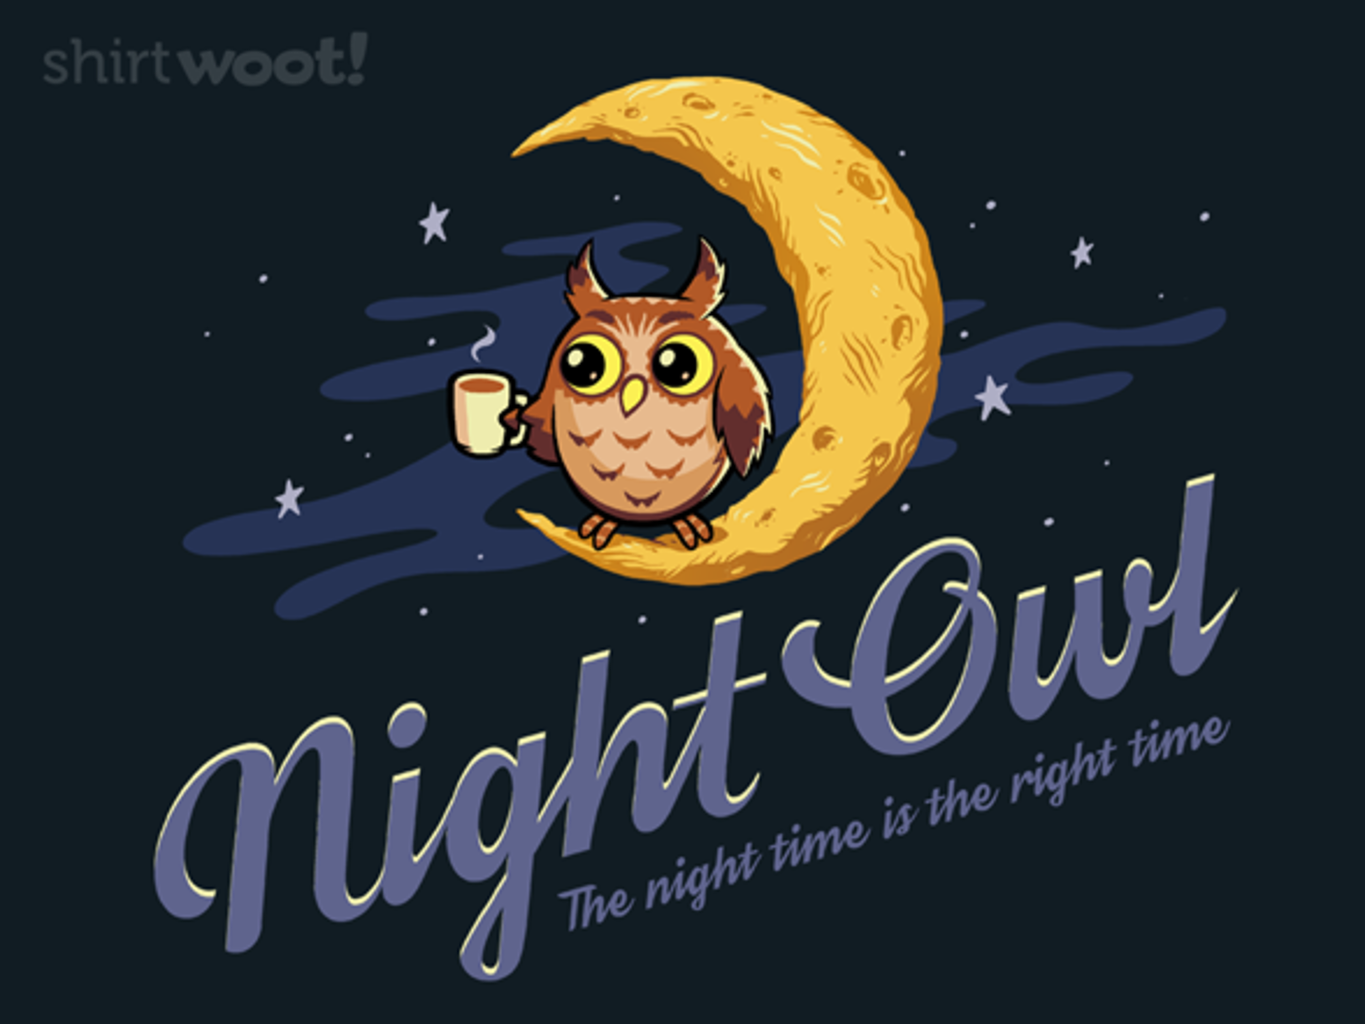 Woot!: Night Time is the Right Time - $15.00 + Free shipping